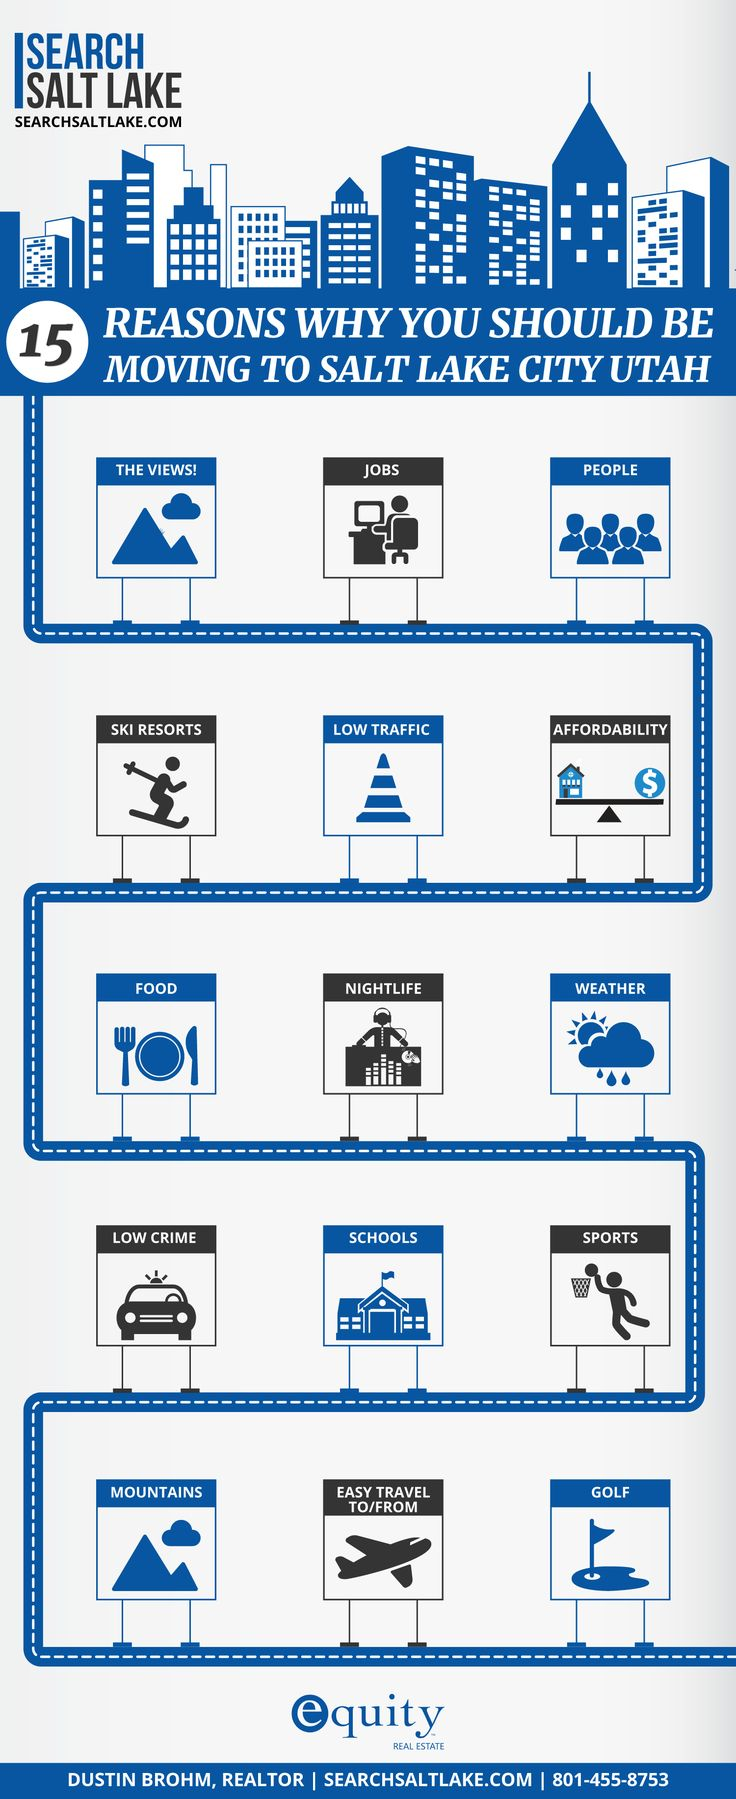 15 Reasons Why You Should Be Moving to Salt Lake City INFOGRAPHIC